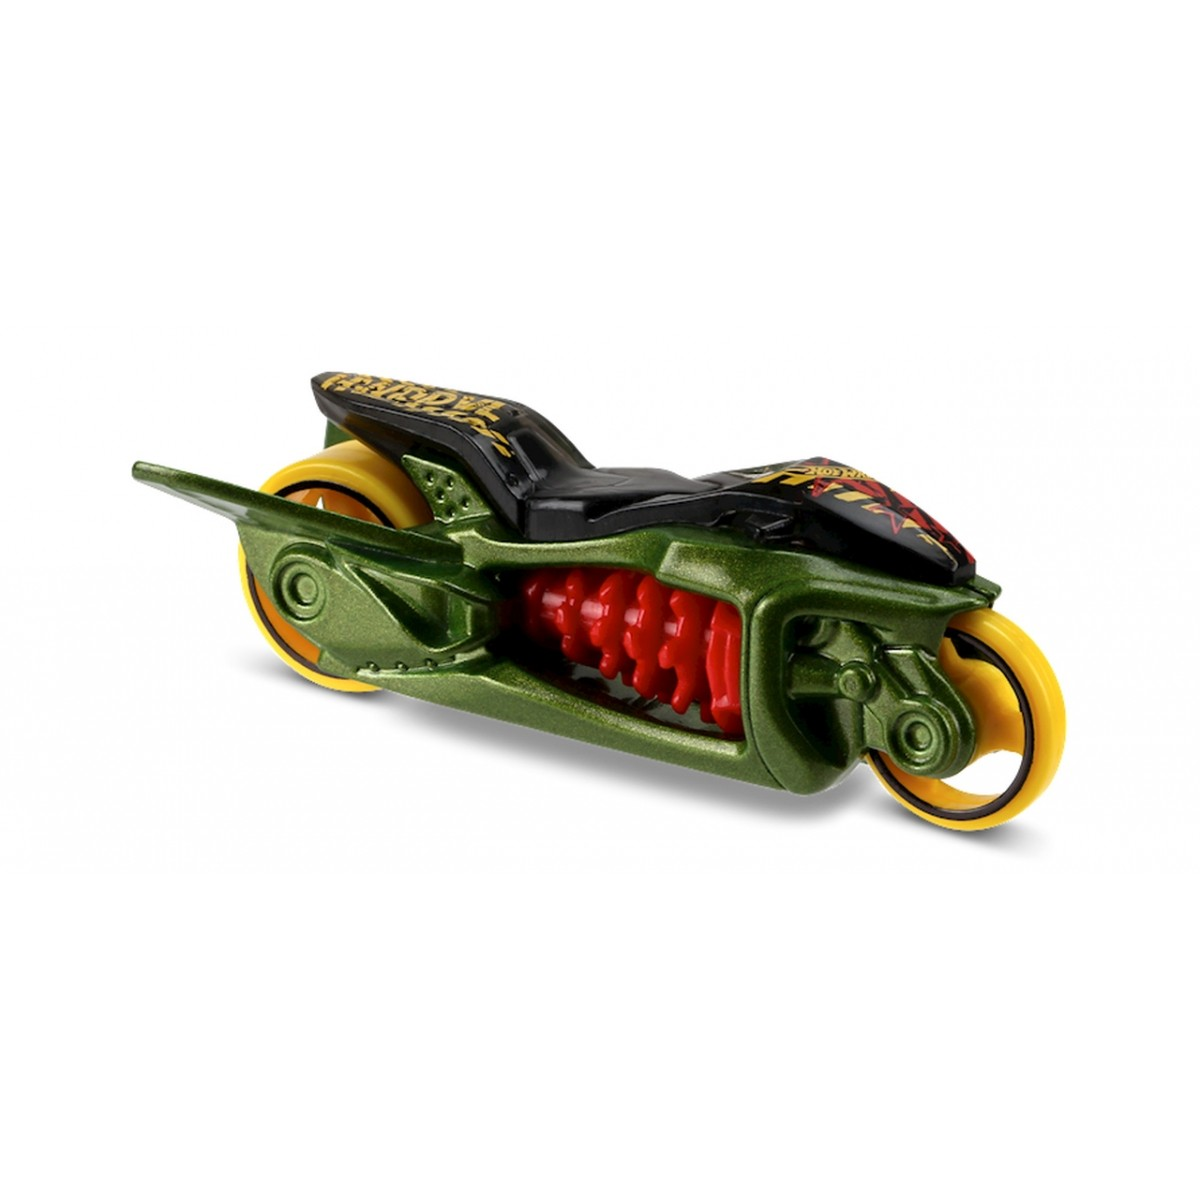 Carrinho Hot Wheels: Fly-By (Moto) Verde